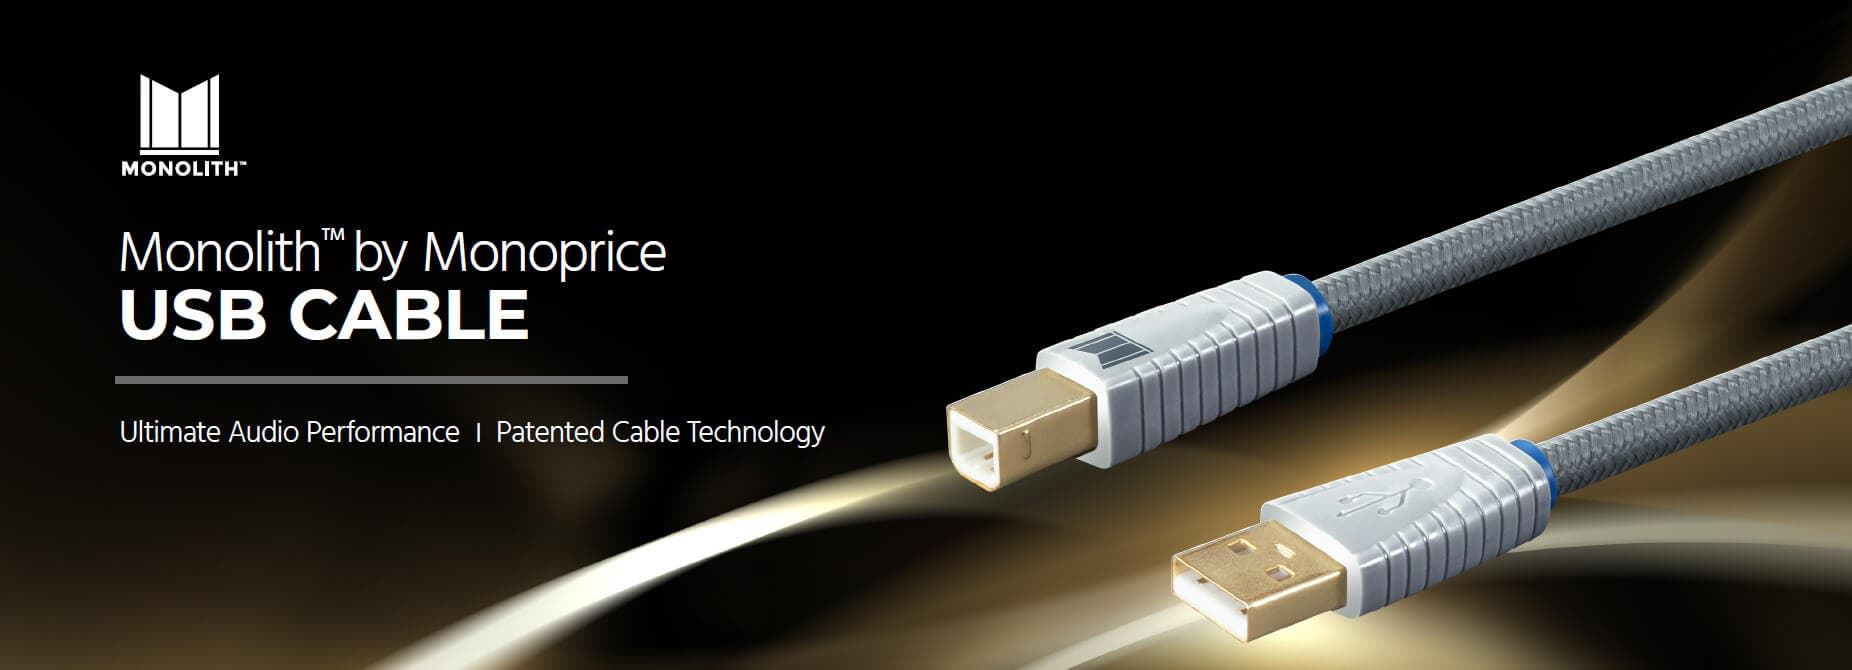 Monolith USB Cable